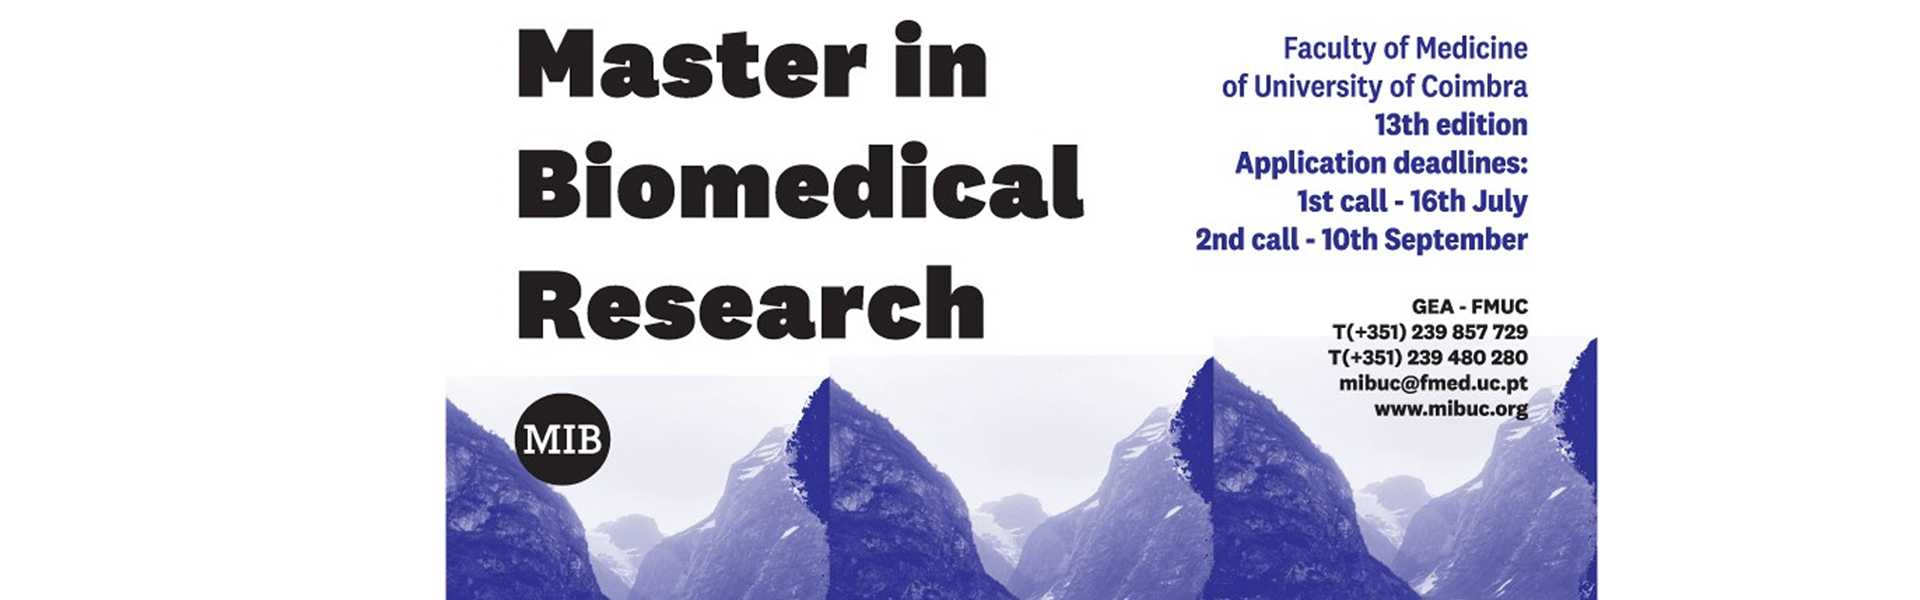 XII Edition of the Master in Biomedical Research